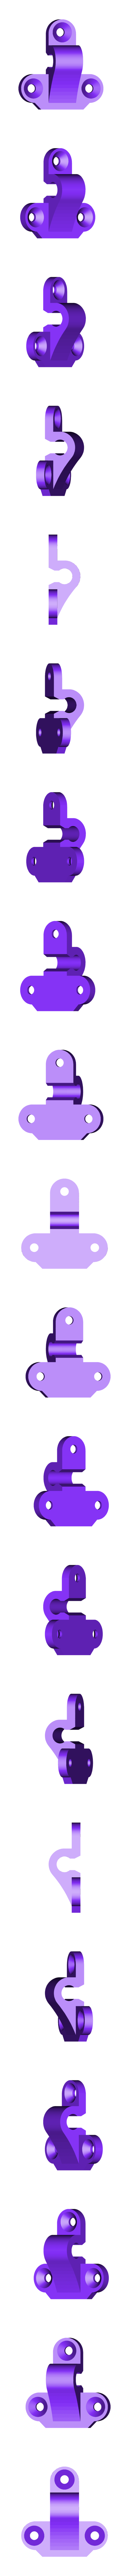 up4.stl Download free STL file Classic style hasp for boxes model 3 • Object to 3D print, raffosan